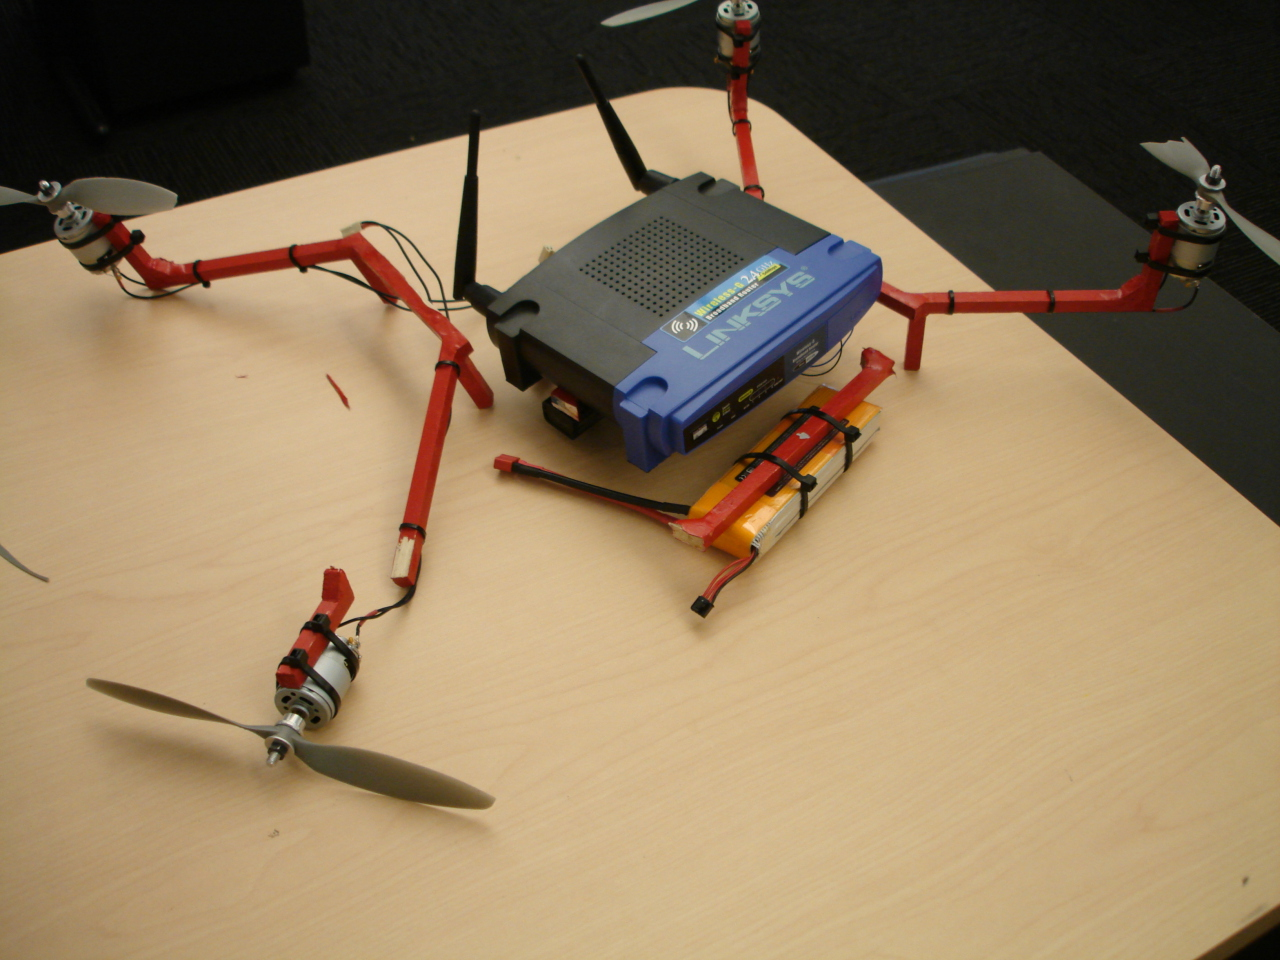 Michael Kohn Linksys Copter Wiring Diagram For Wrt54g Quadcopter Destroyed